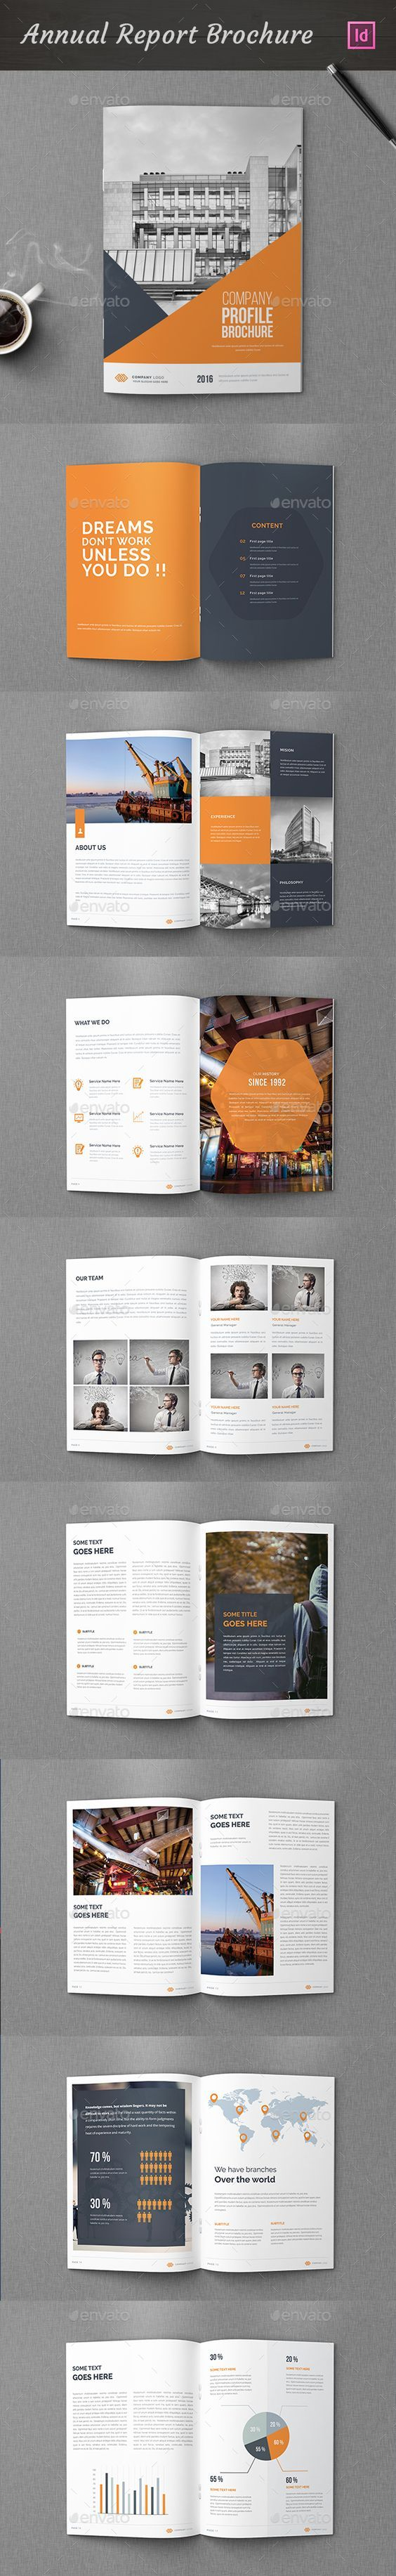 Annual Report Brochure Brochure Template Annual Reports And - Brochure design templates indesign